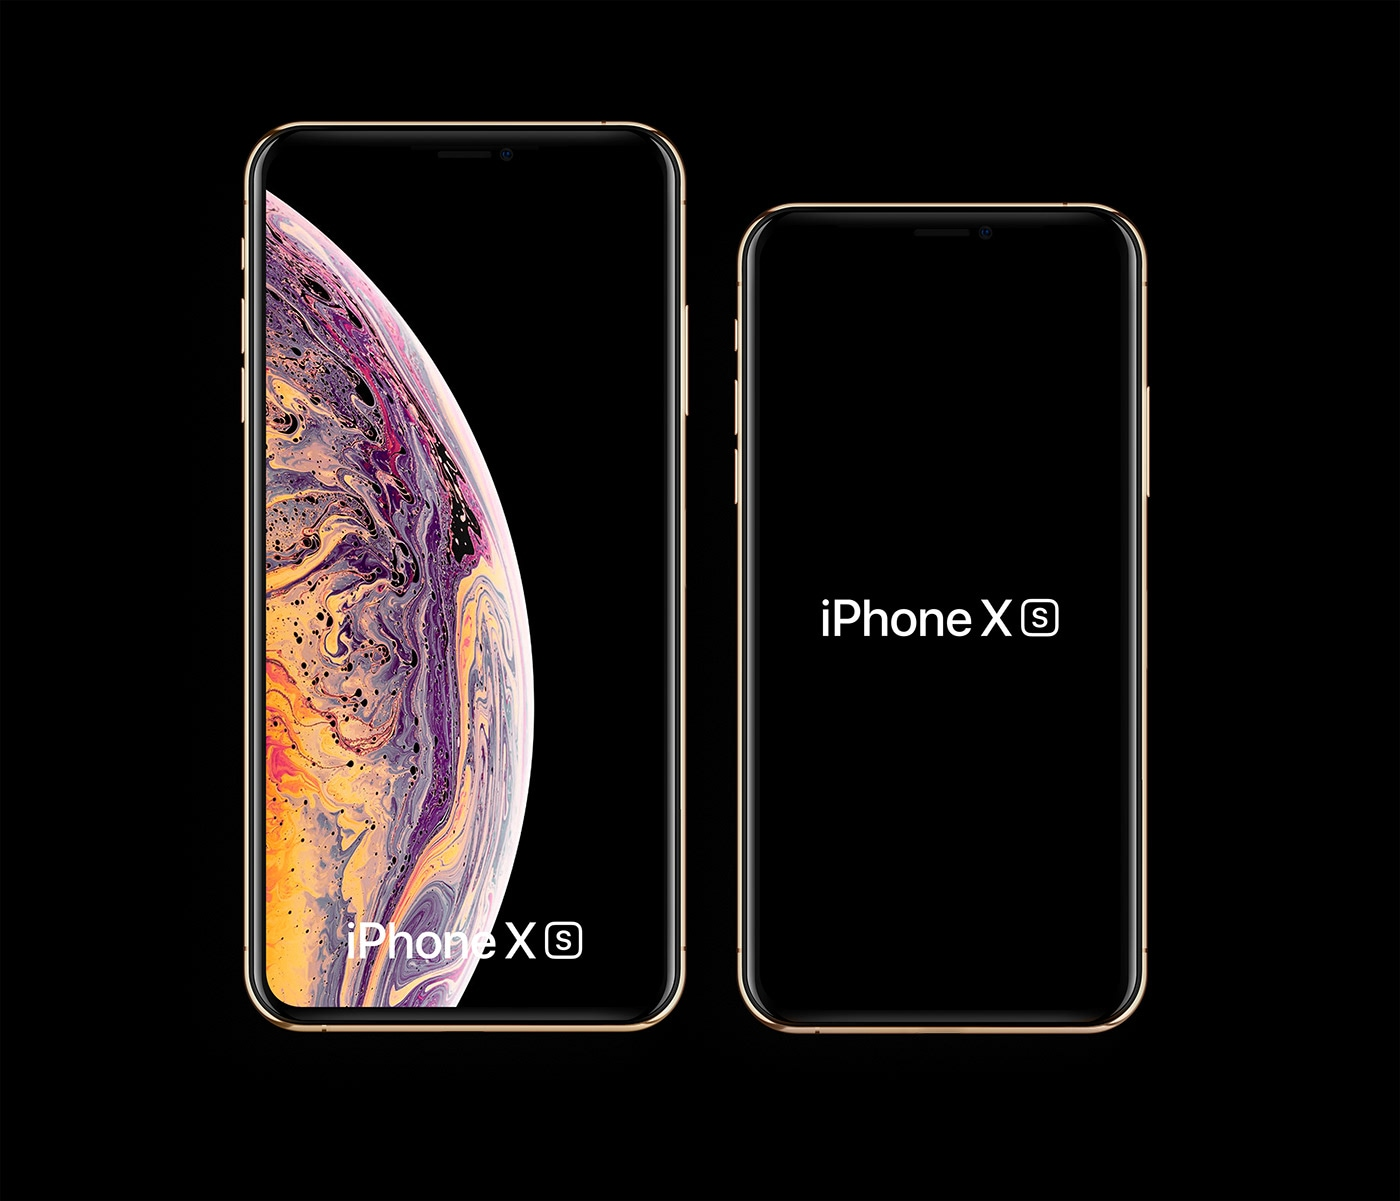 iPhone Xs and iPhone Xs Max Mockups - Changeable colors. Space Gray, Gold, Silver, White Clay, Black Clay